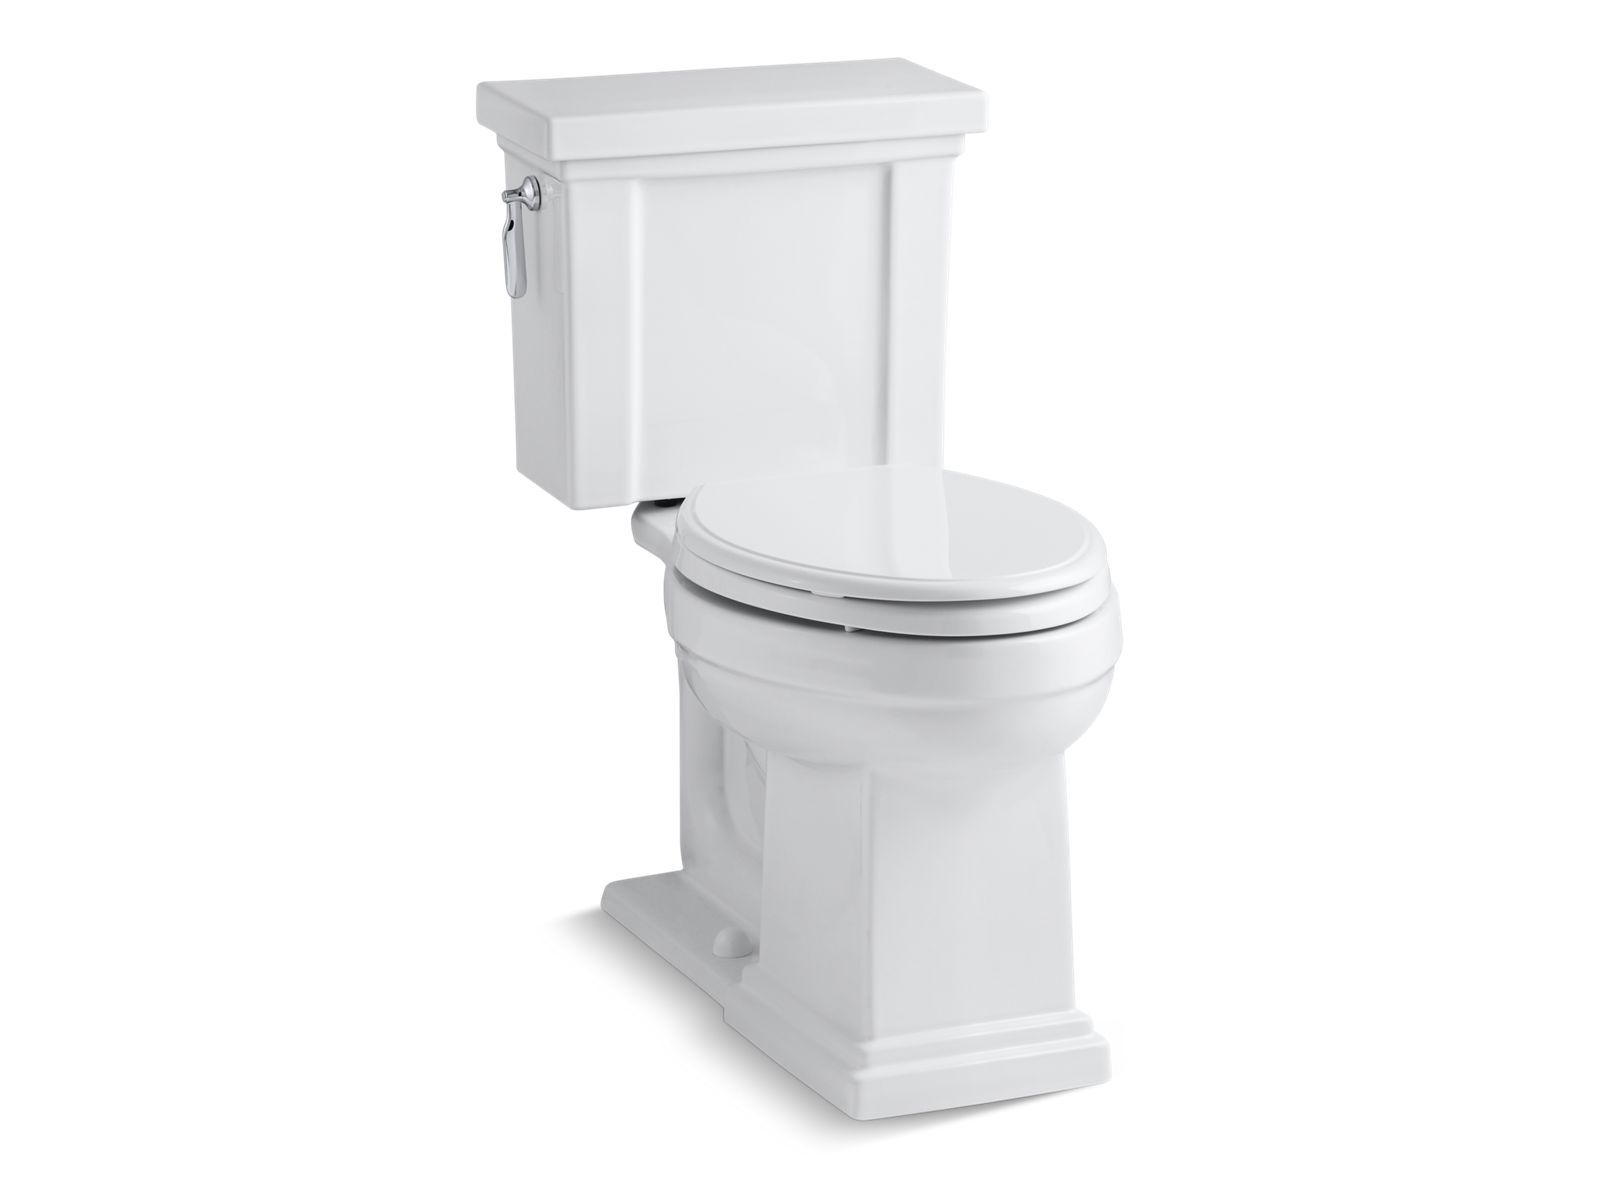 Tresham Comfort Height Two-Piece Elongated 1.28 GPF Toilet with AquaPiston Flushing Technology and Left-Hand Trip Lever